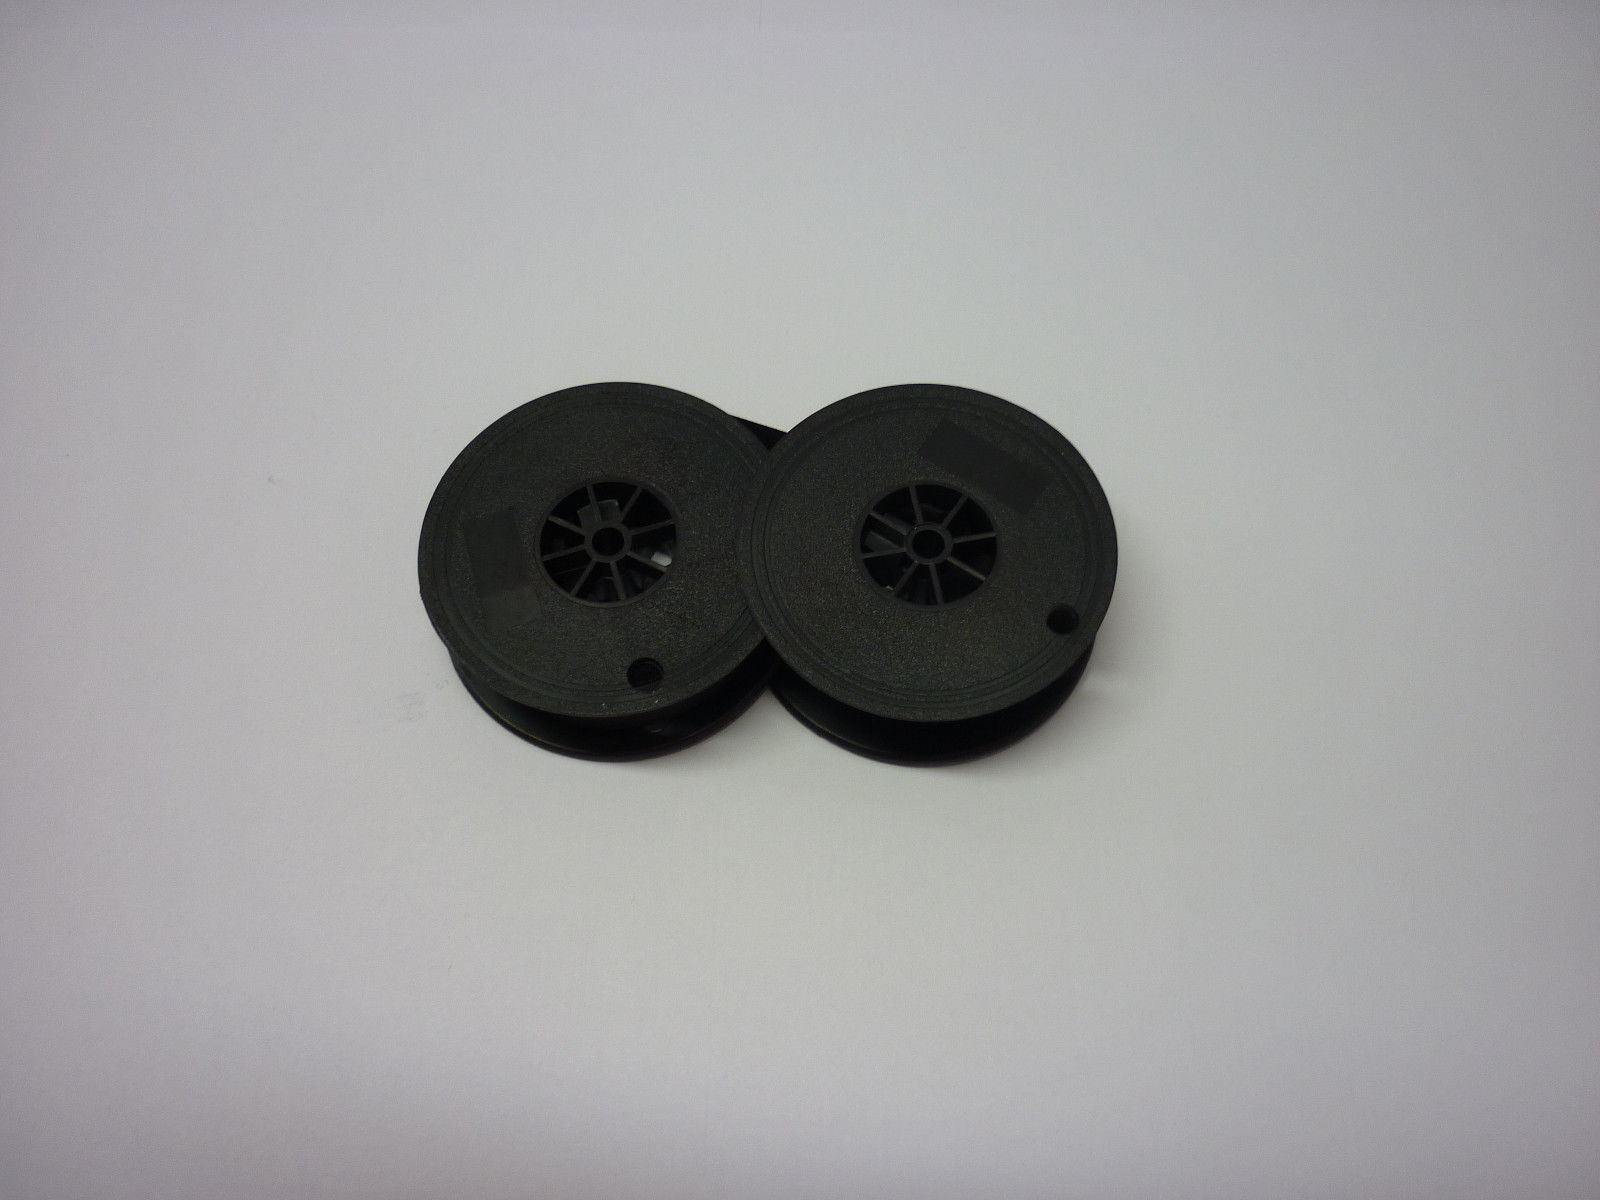 Kmart 300 Deluxe 12 Typewriter Ribbon Black Twin Spool